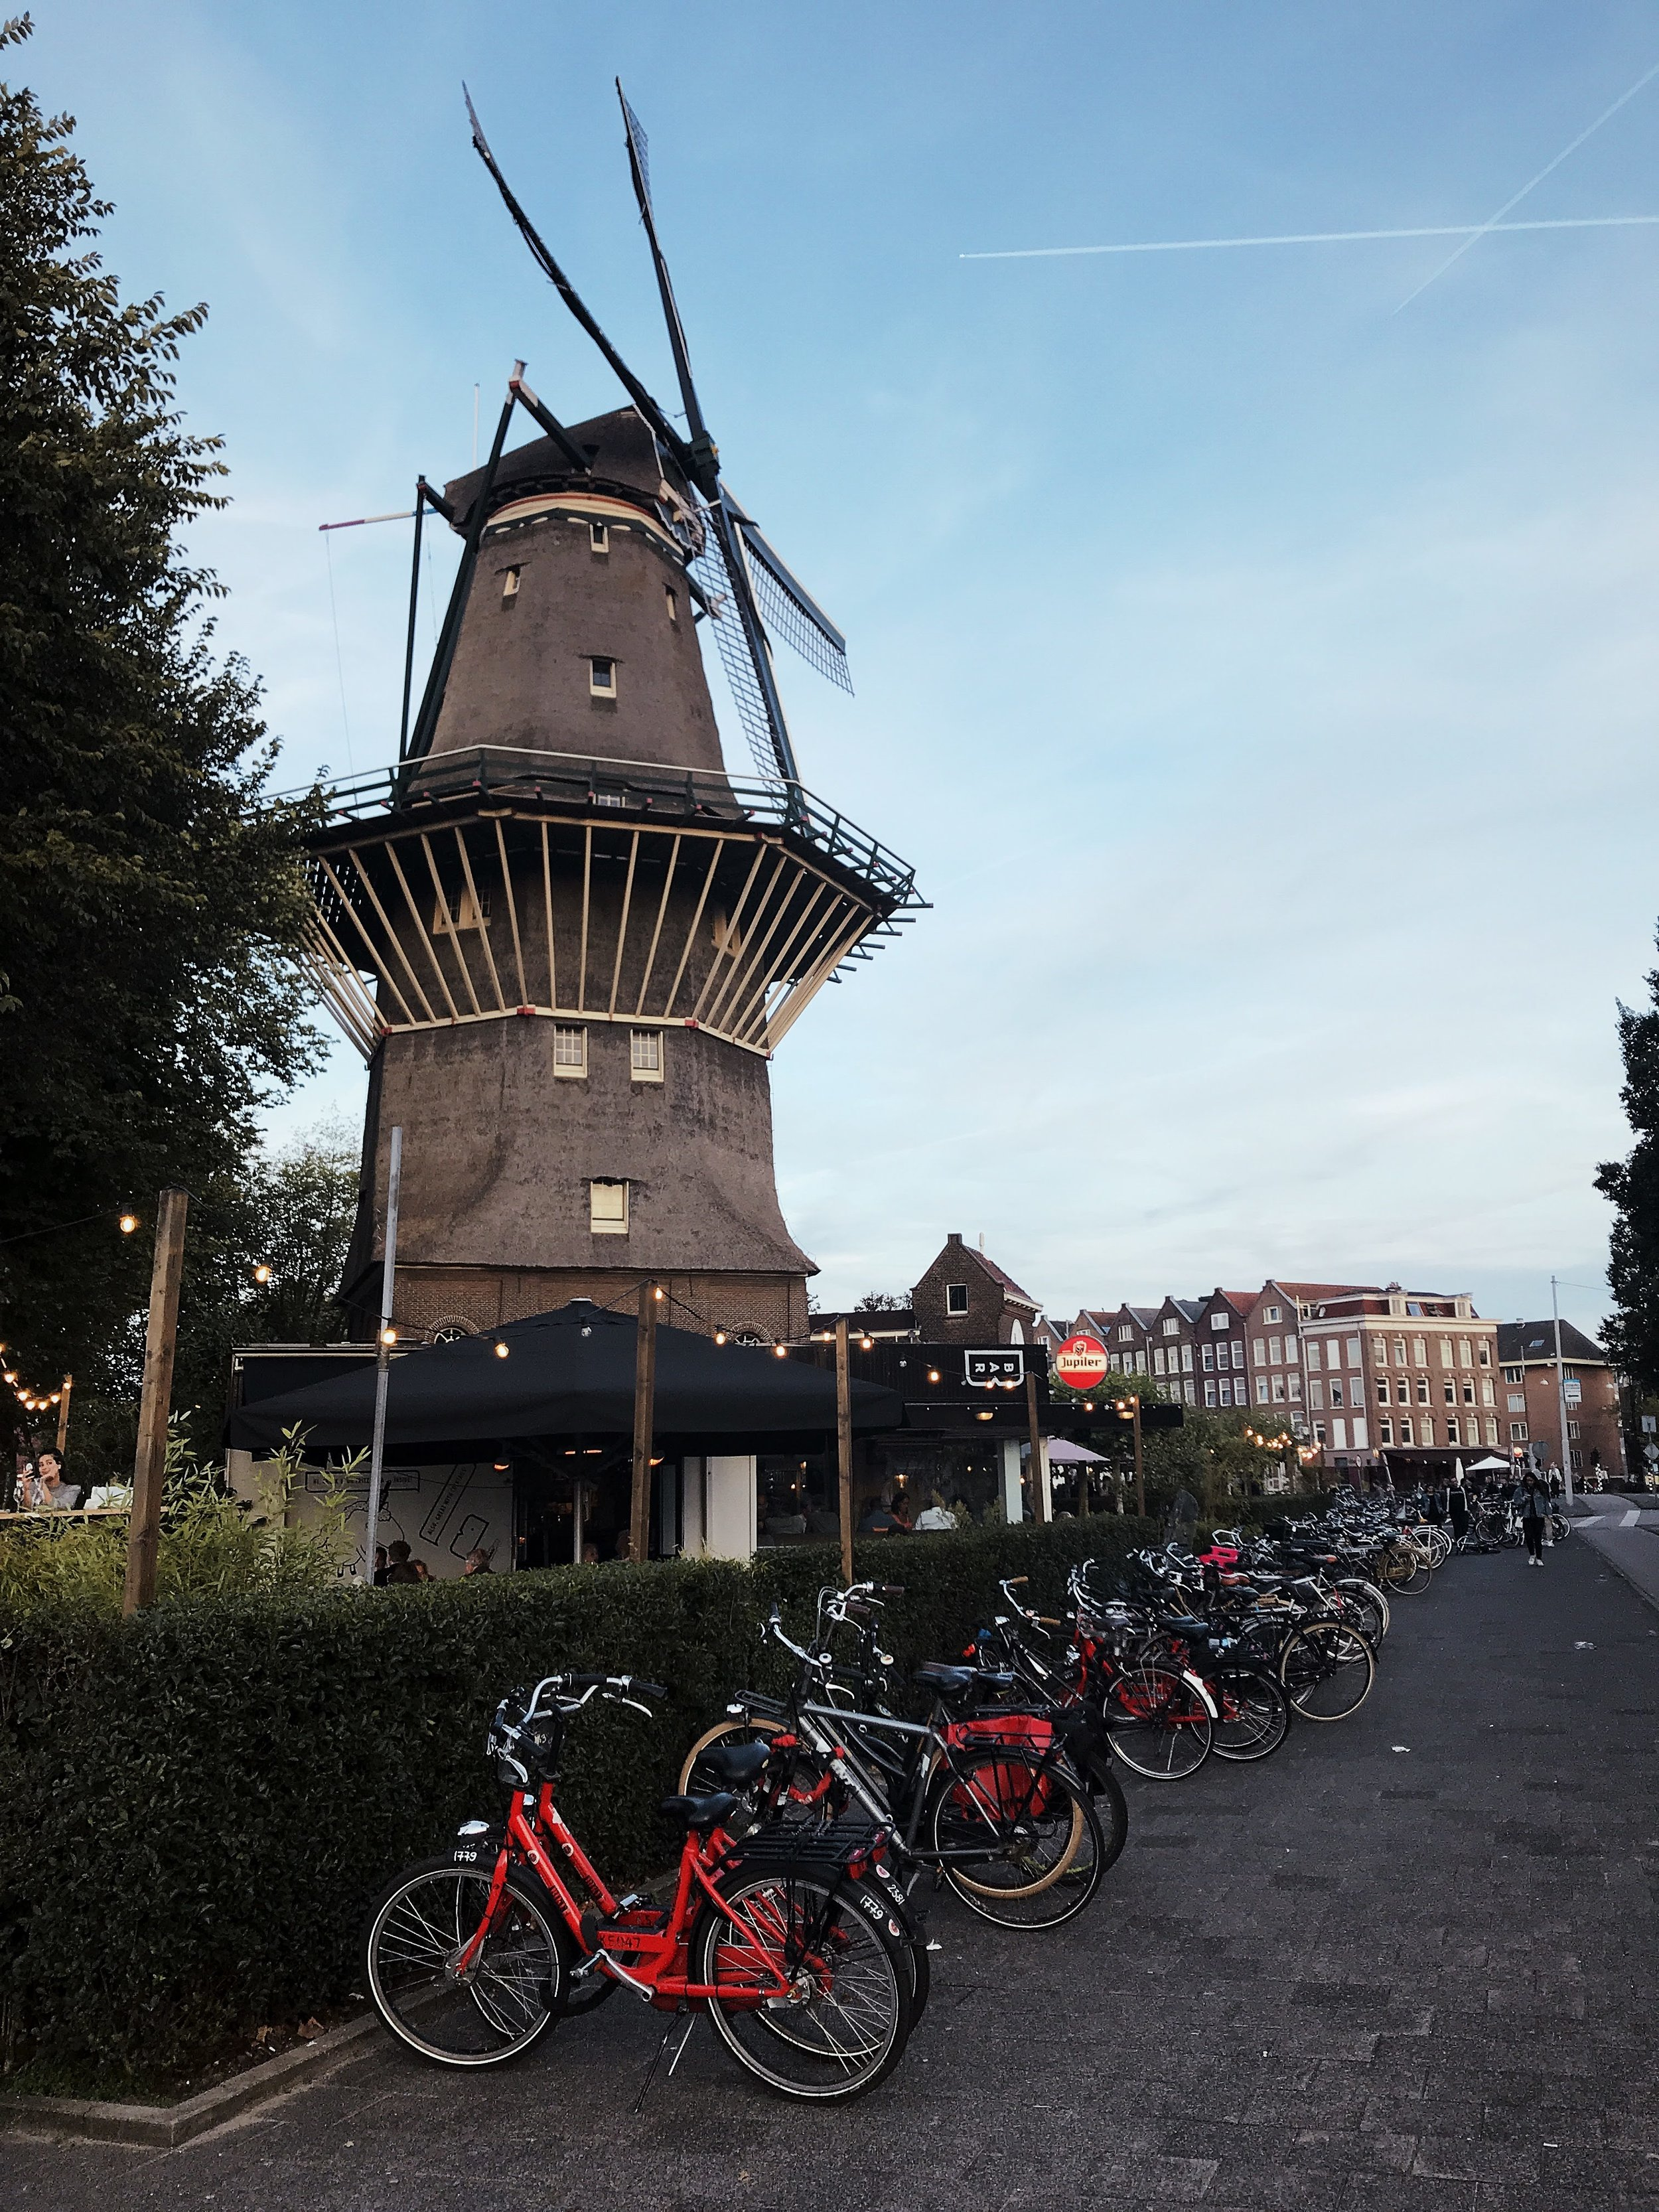 Windmill at Brouwerij 't IJ